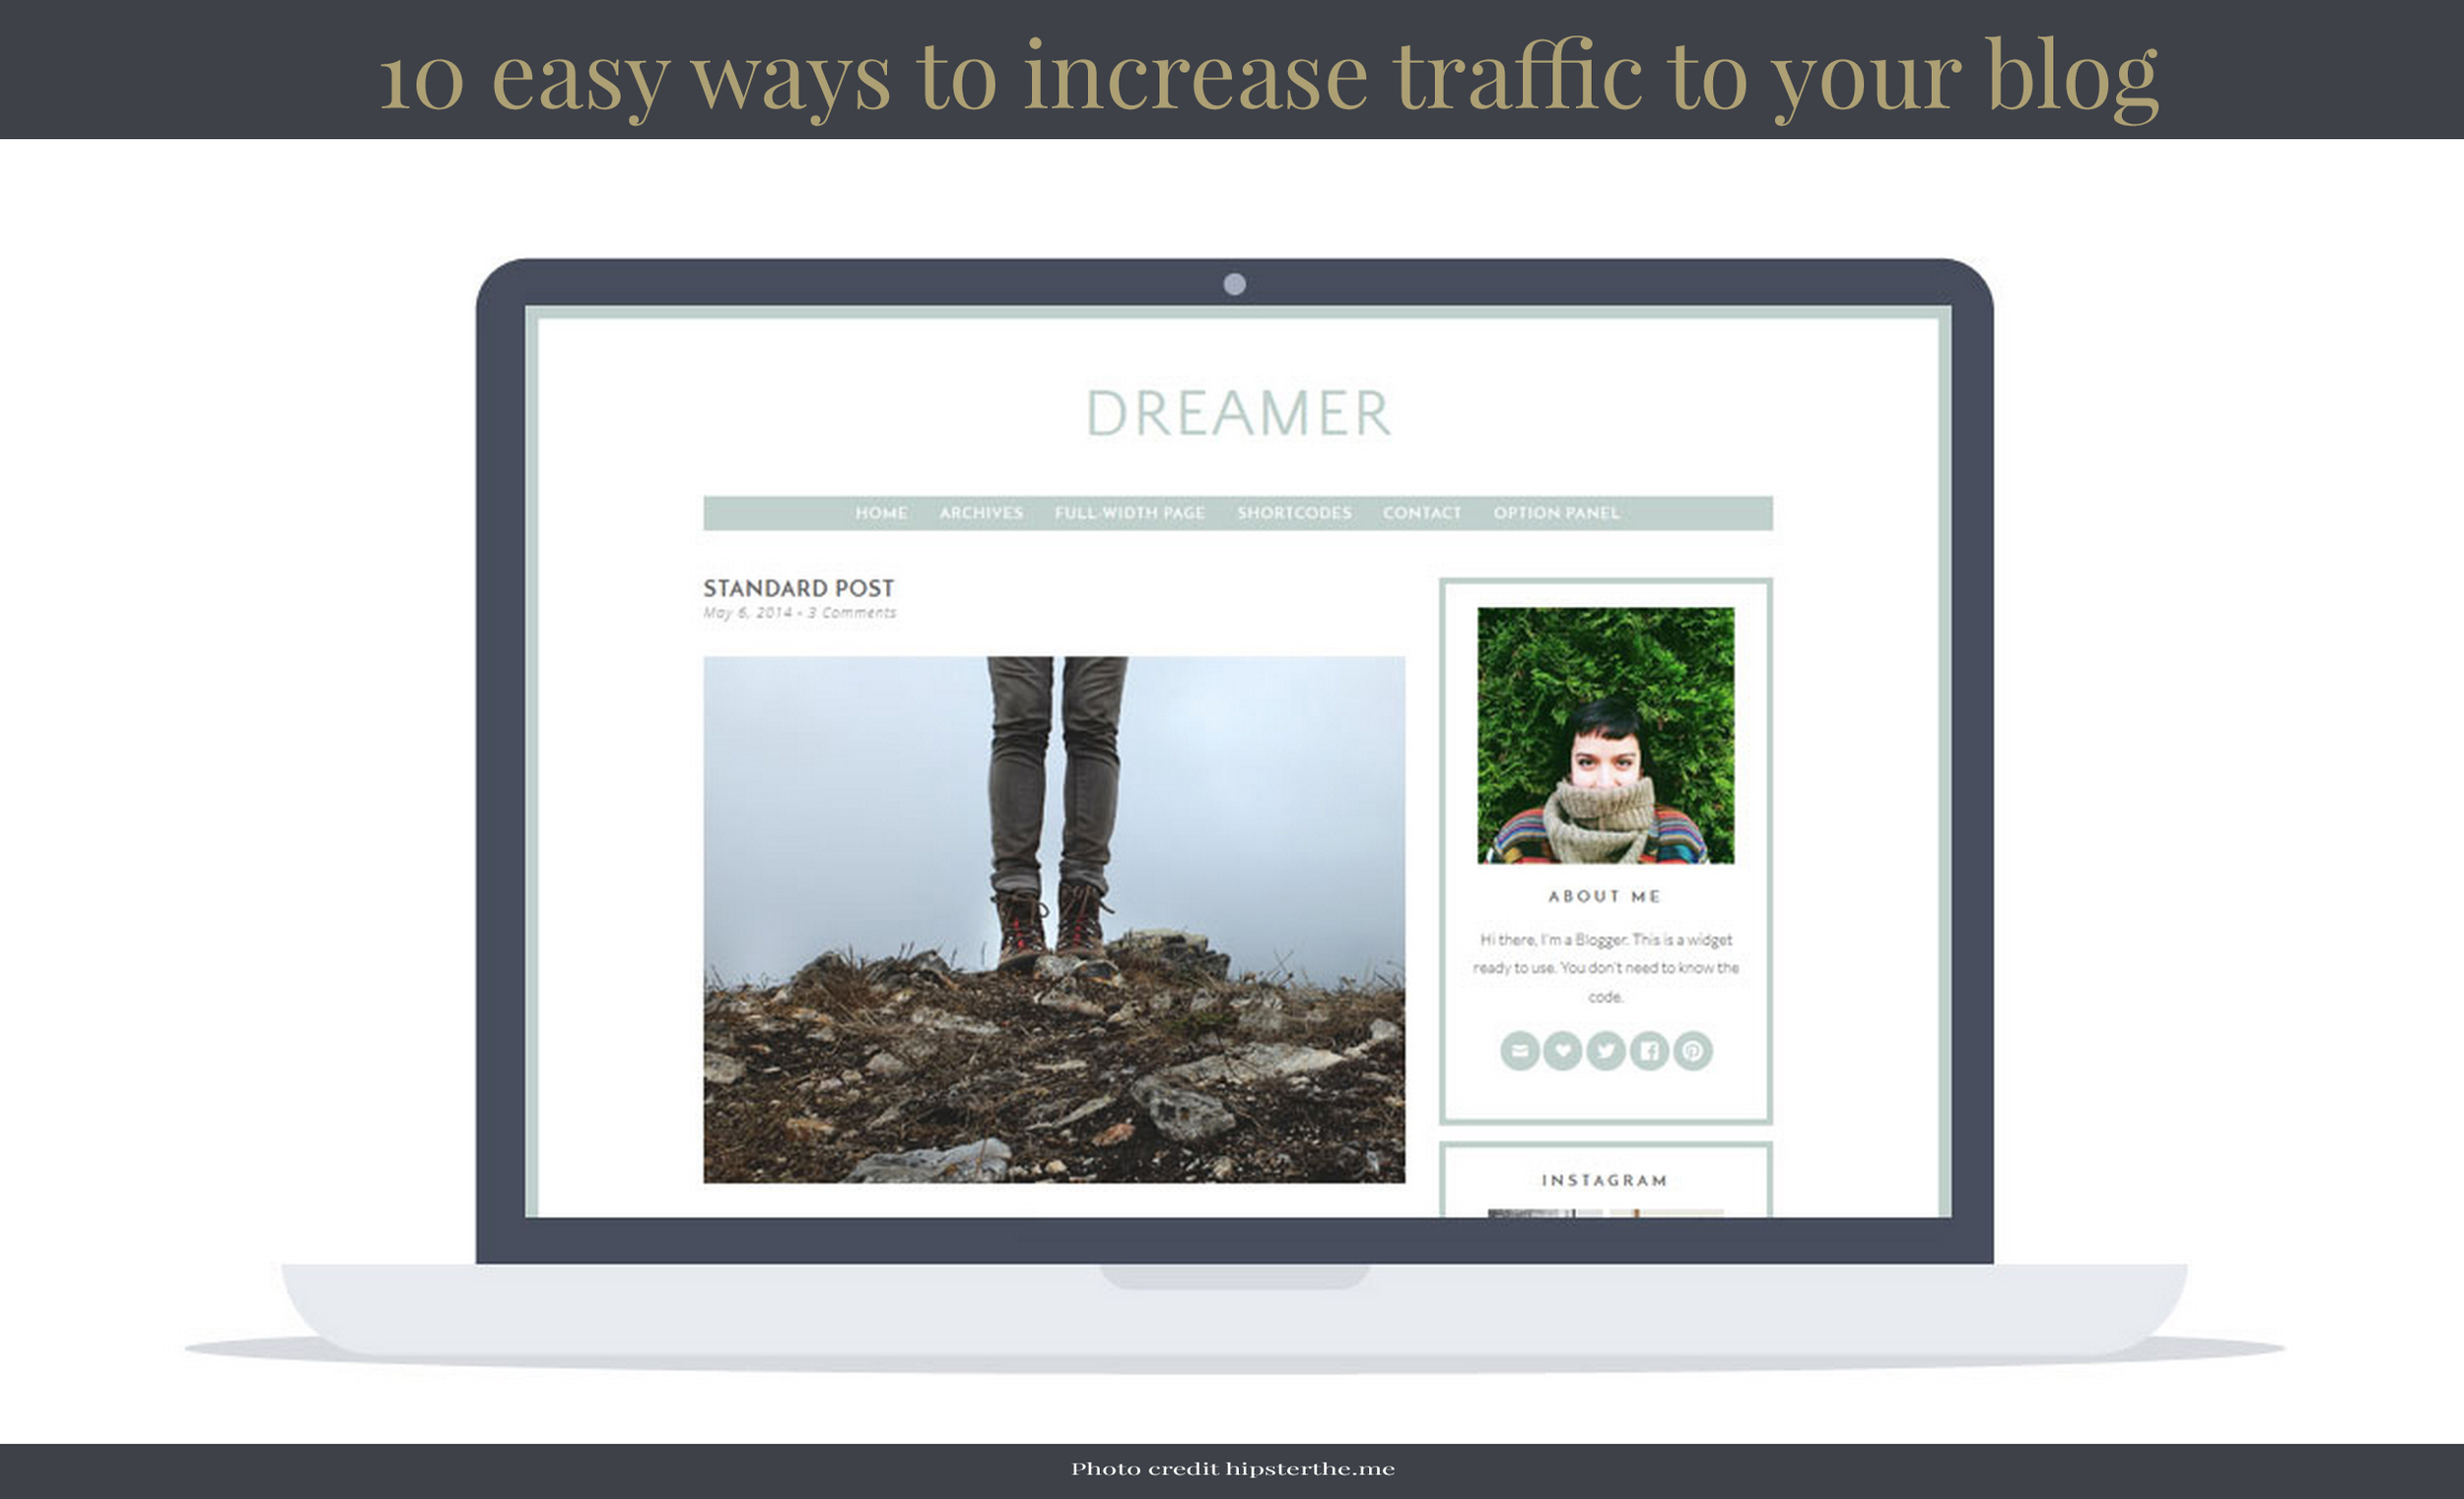 10 ways to increase traffic to your blog.jpg